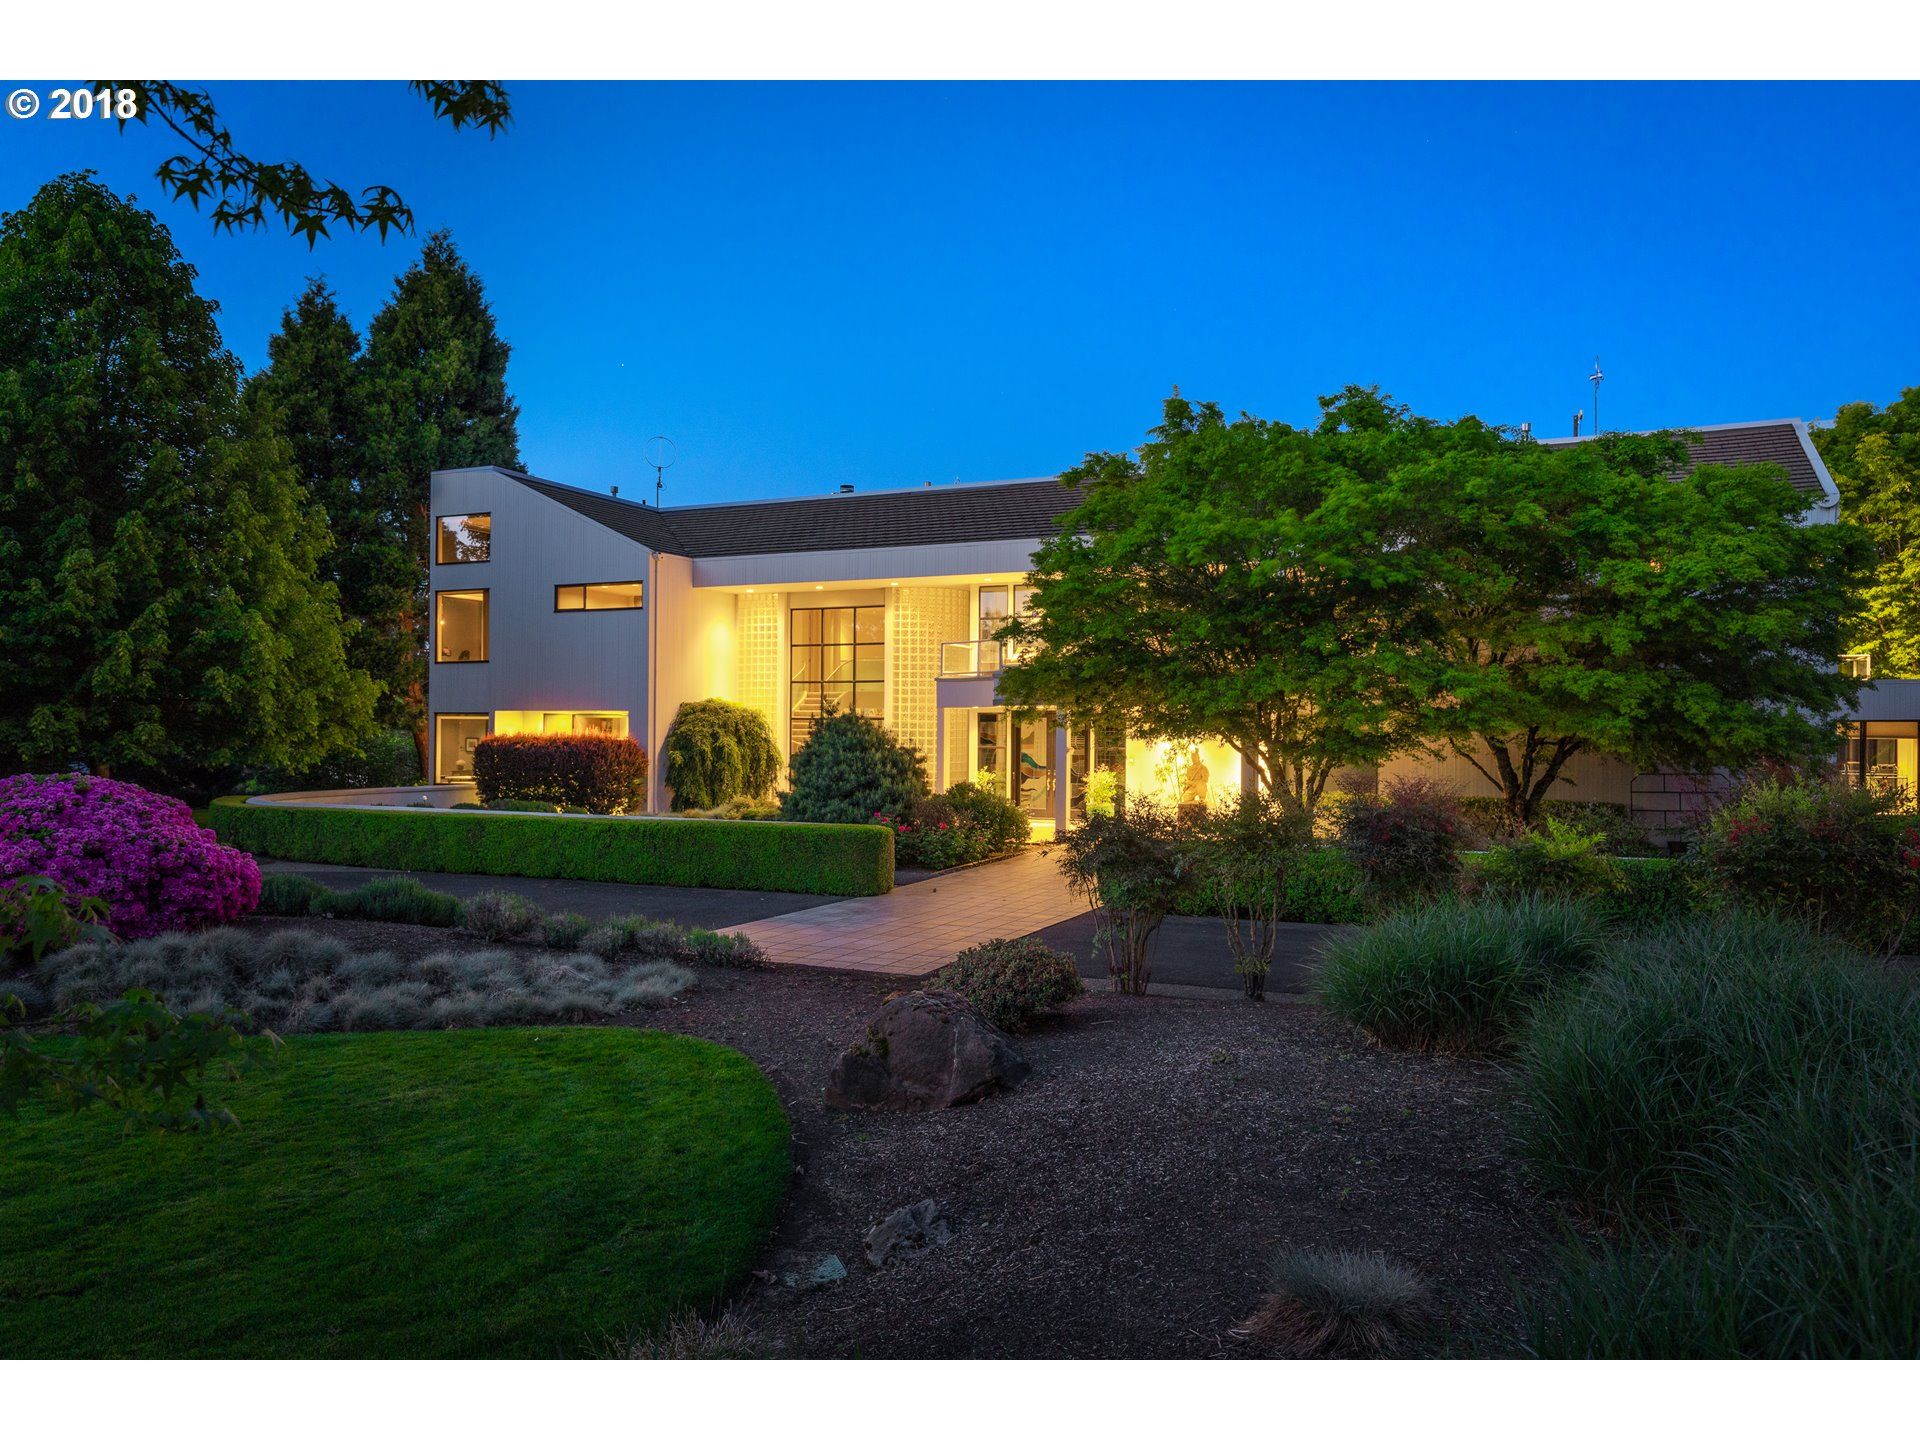 Modern 7,094 sq. ft. home in West Linn gated community on 20 park-like acres. Custom designed with amazing indoor pool & spa house with telescoping doors that open to patio. Gorgeous finishes throughout incl Birdseye cherry & zebrawood, chefs kitchen with deluxe appliances, sound-isolated home theater, 5 bedrooms & 6 baths incl. 2nd master on main. Fully automated light and audio control throughout. Beautiful pond with creek & grounds.